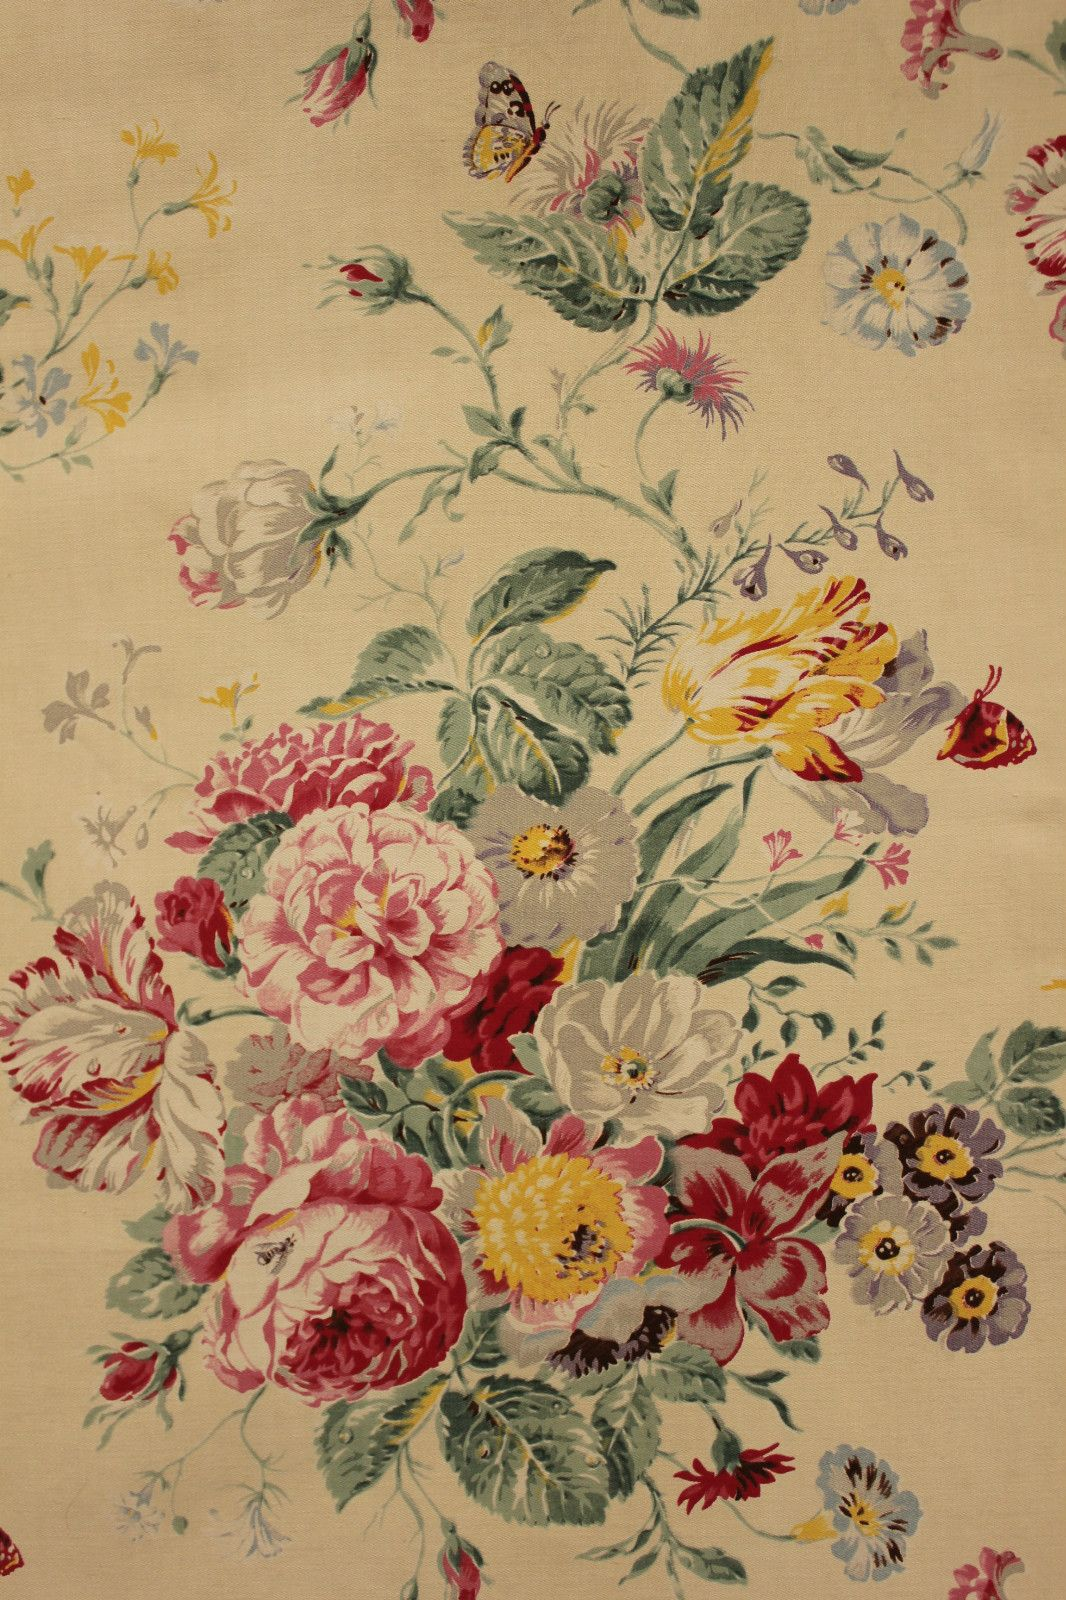 Vintage French Cotton Floral Satinized Fabric Material